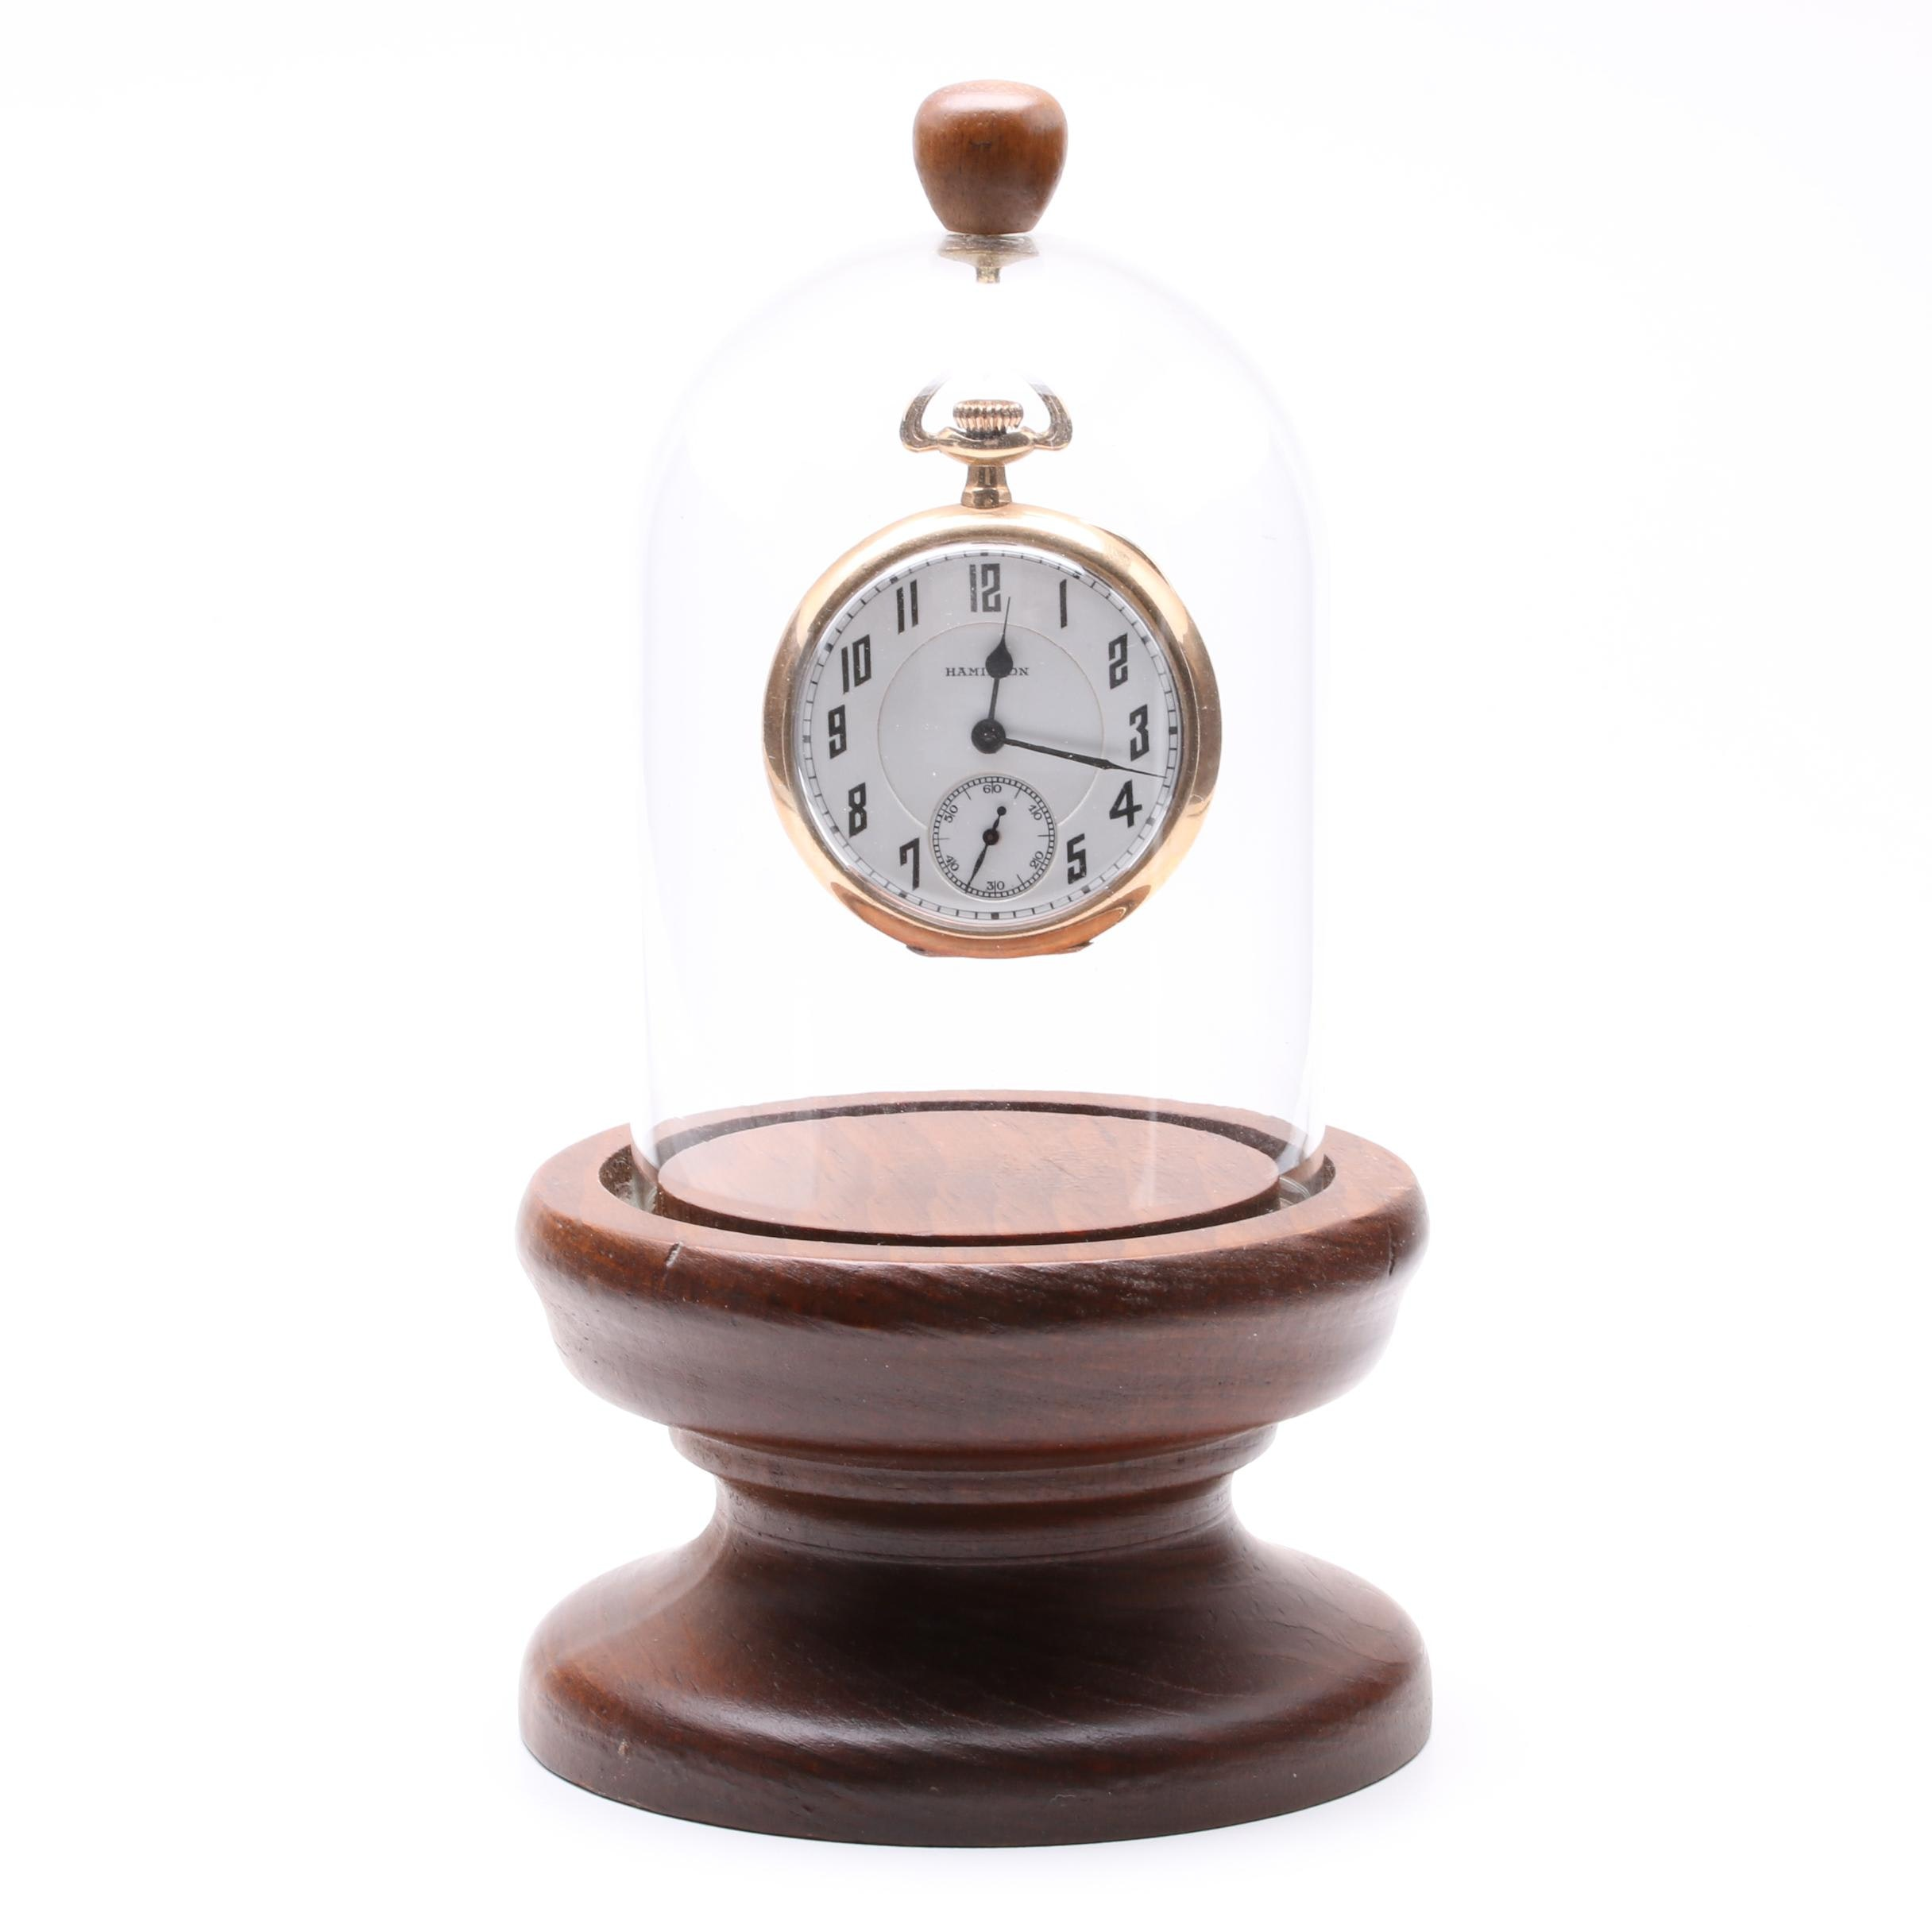 Hamilton Gold-Filled Pocket Watch with Wooden Display Stand